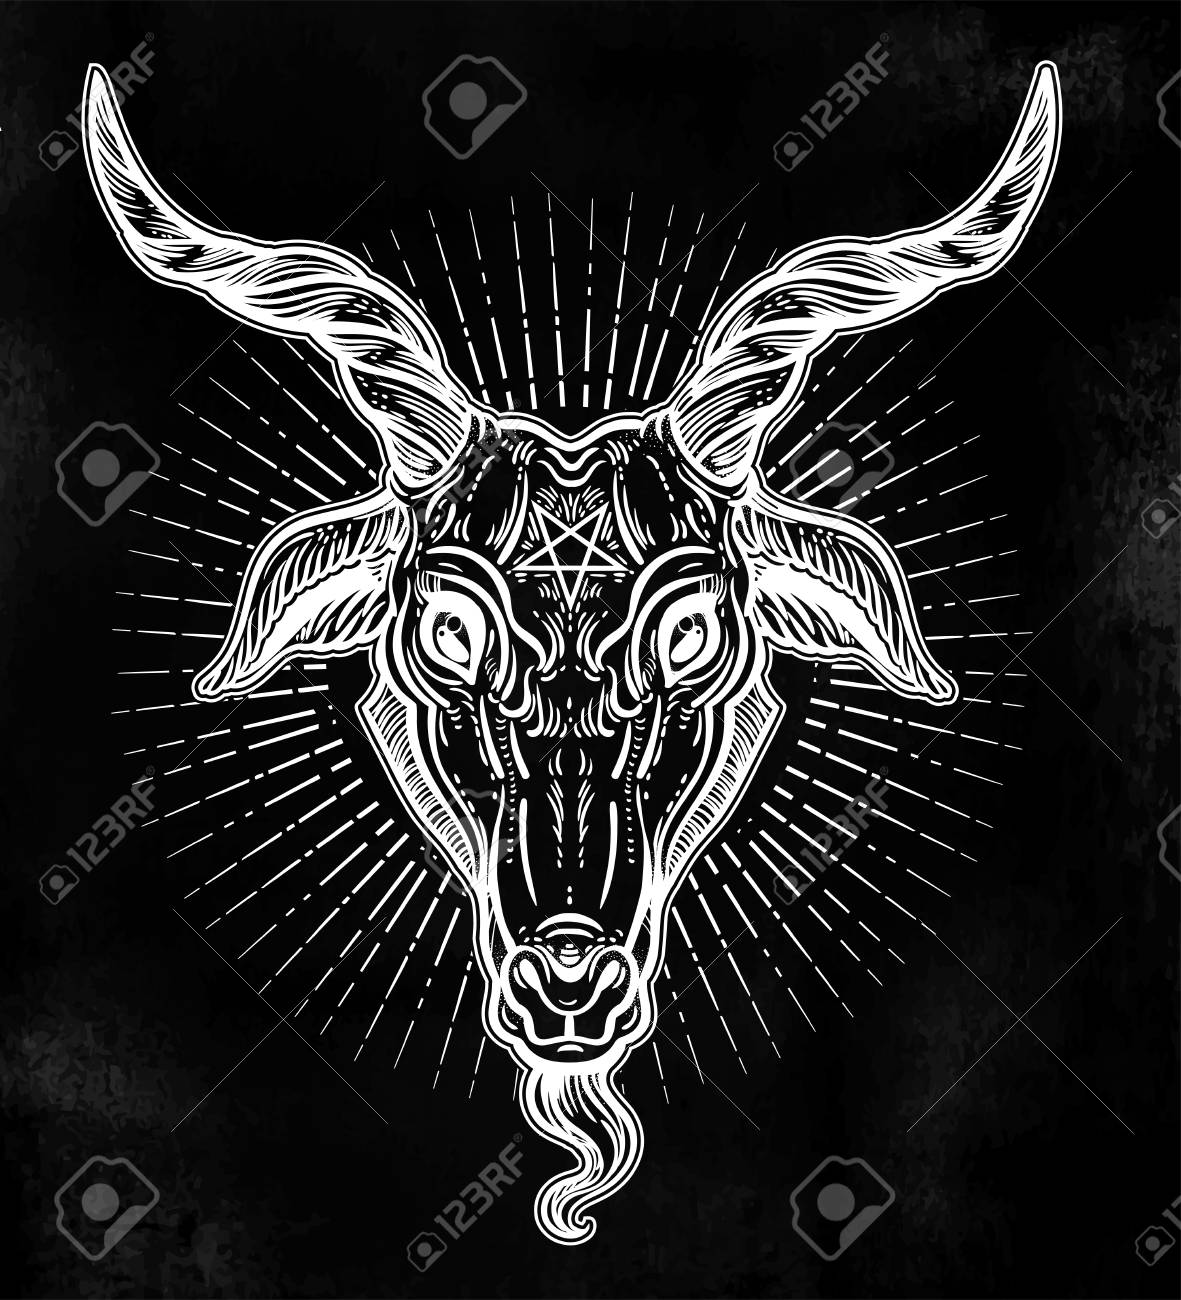 Pentagram In The Head Of Demon Baphomet Satanic Goat Head Binary